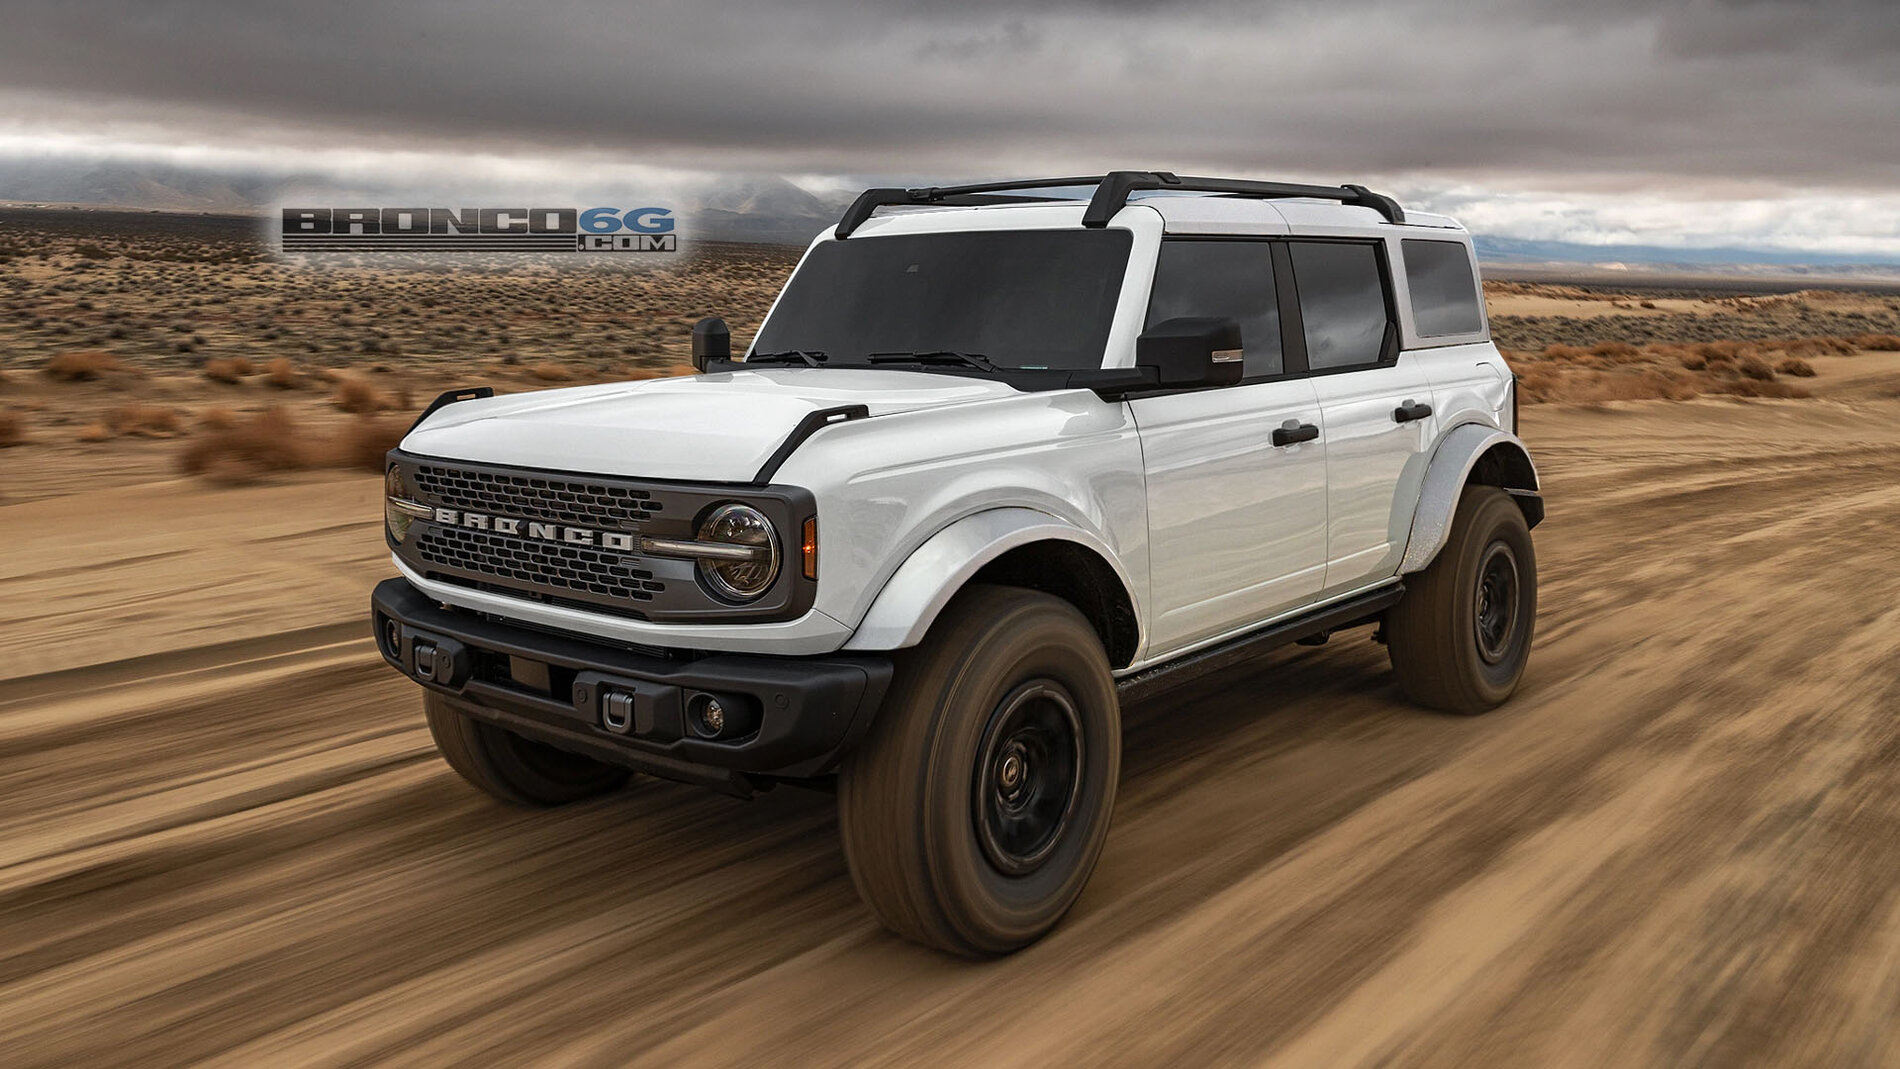 2021 Ford Bronco Sasquatch Oxford-White-Fenders-RoofBronco6G.com.jpg